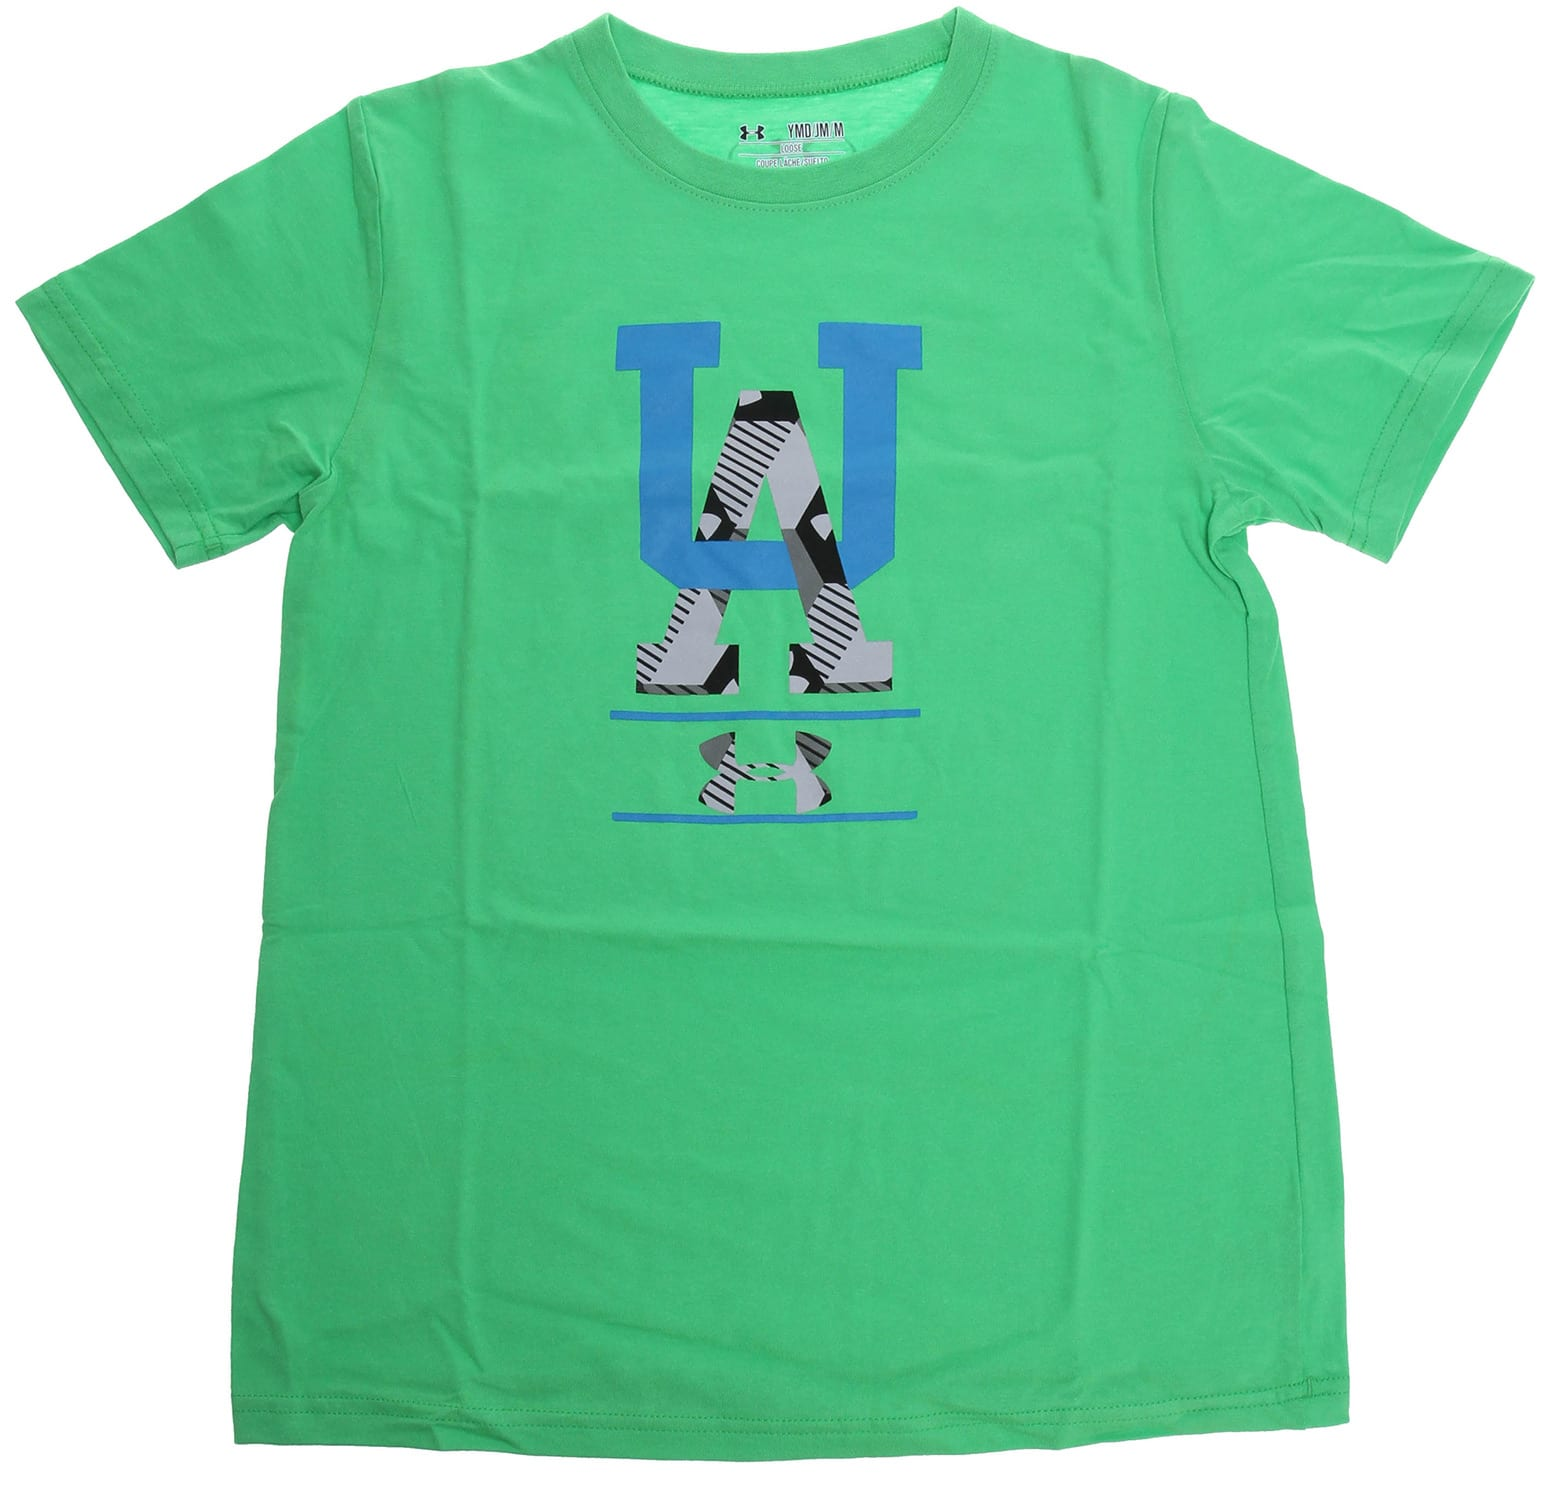 On sale under armour monjana t shirt kids youth up to for Under armour tee shirts sale